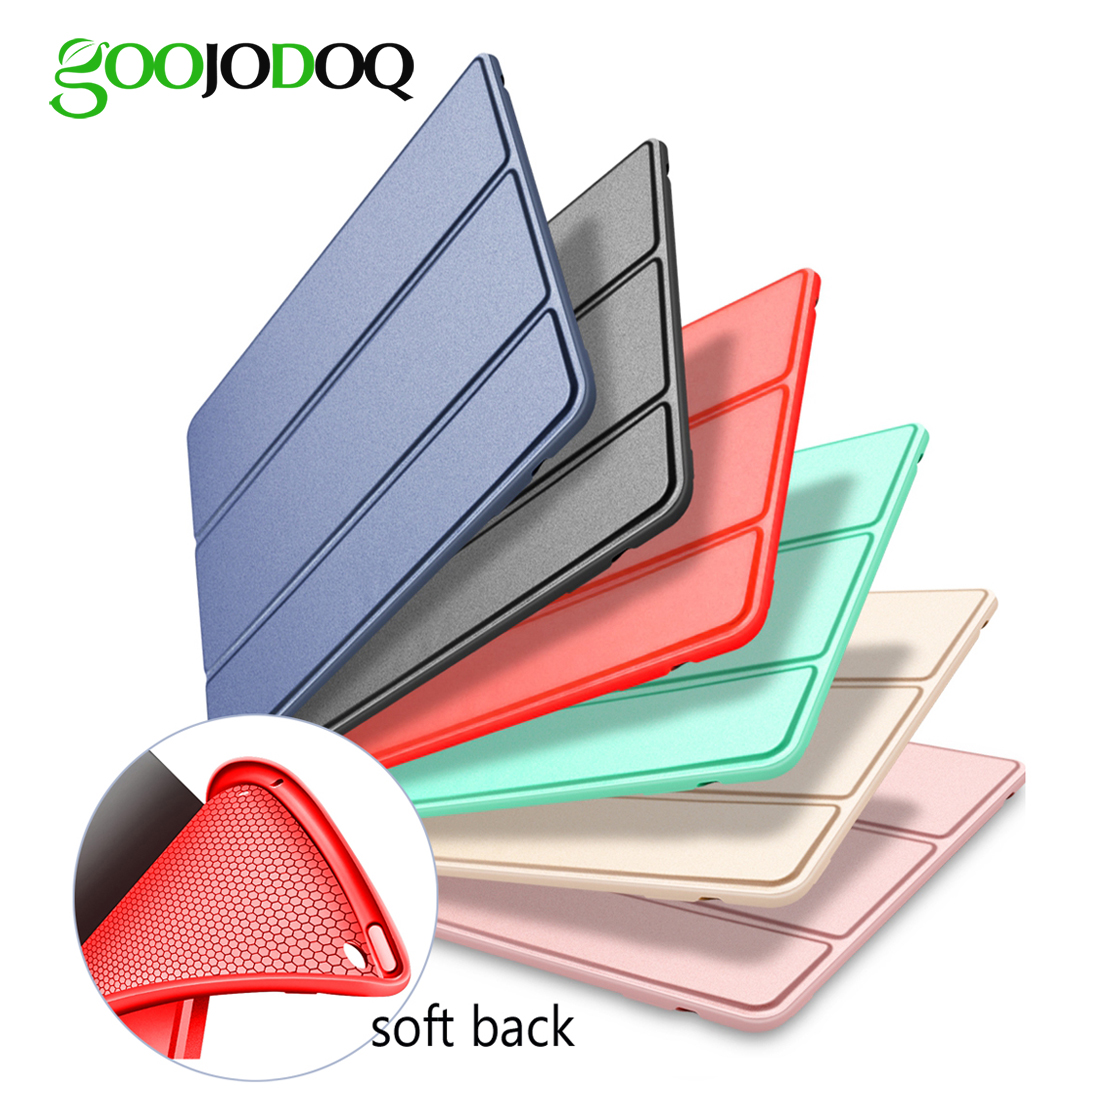 For iPad Air 2 Air 1 Case Silicone Soft Back Slim Pu Leather Smart Cover Case for Apple iPad Air 2 1 Case Auto Sleep / Wake up qianniao for apple ipad air 2 case 360 degree rotating stand smart cover pu leather auto sleep wake for ipad 6 2014 model